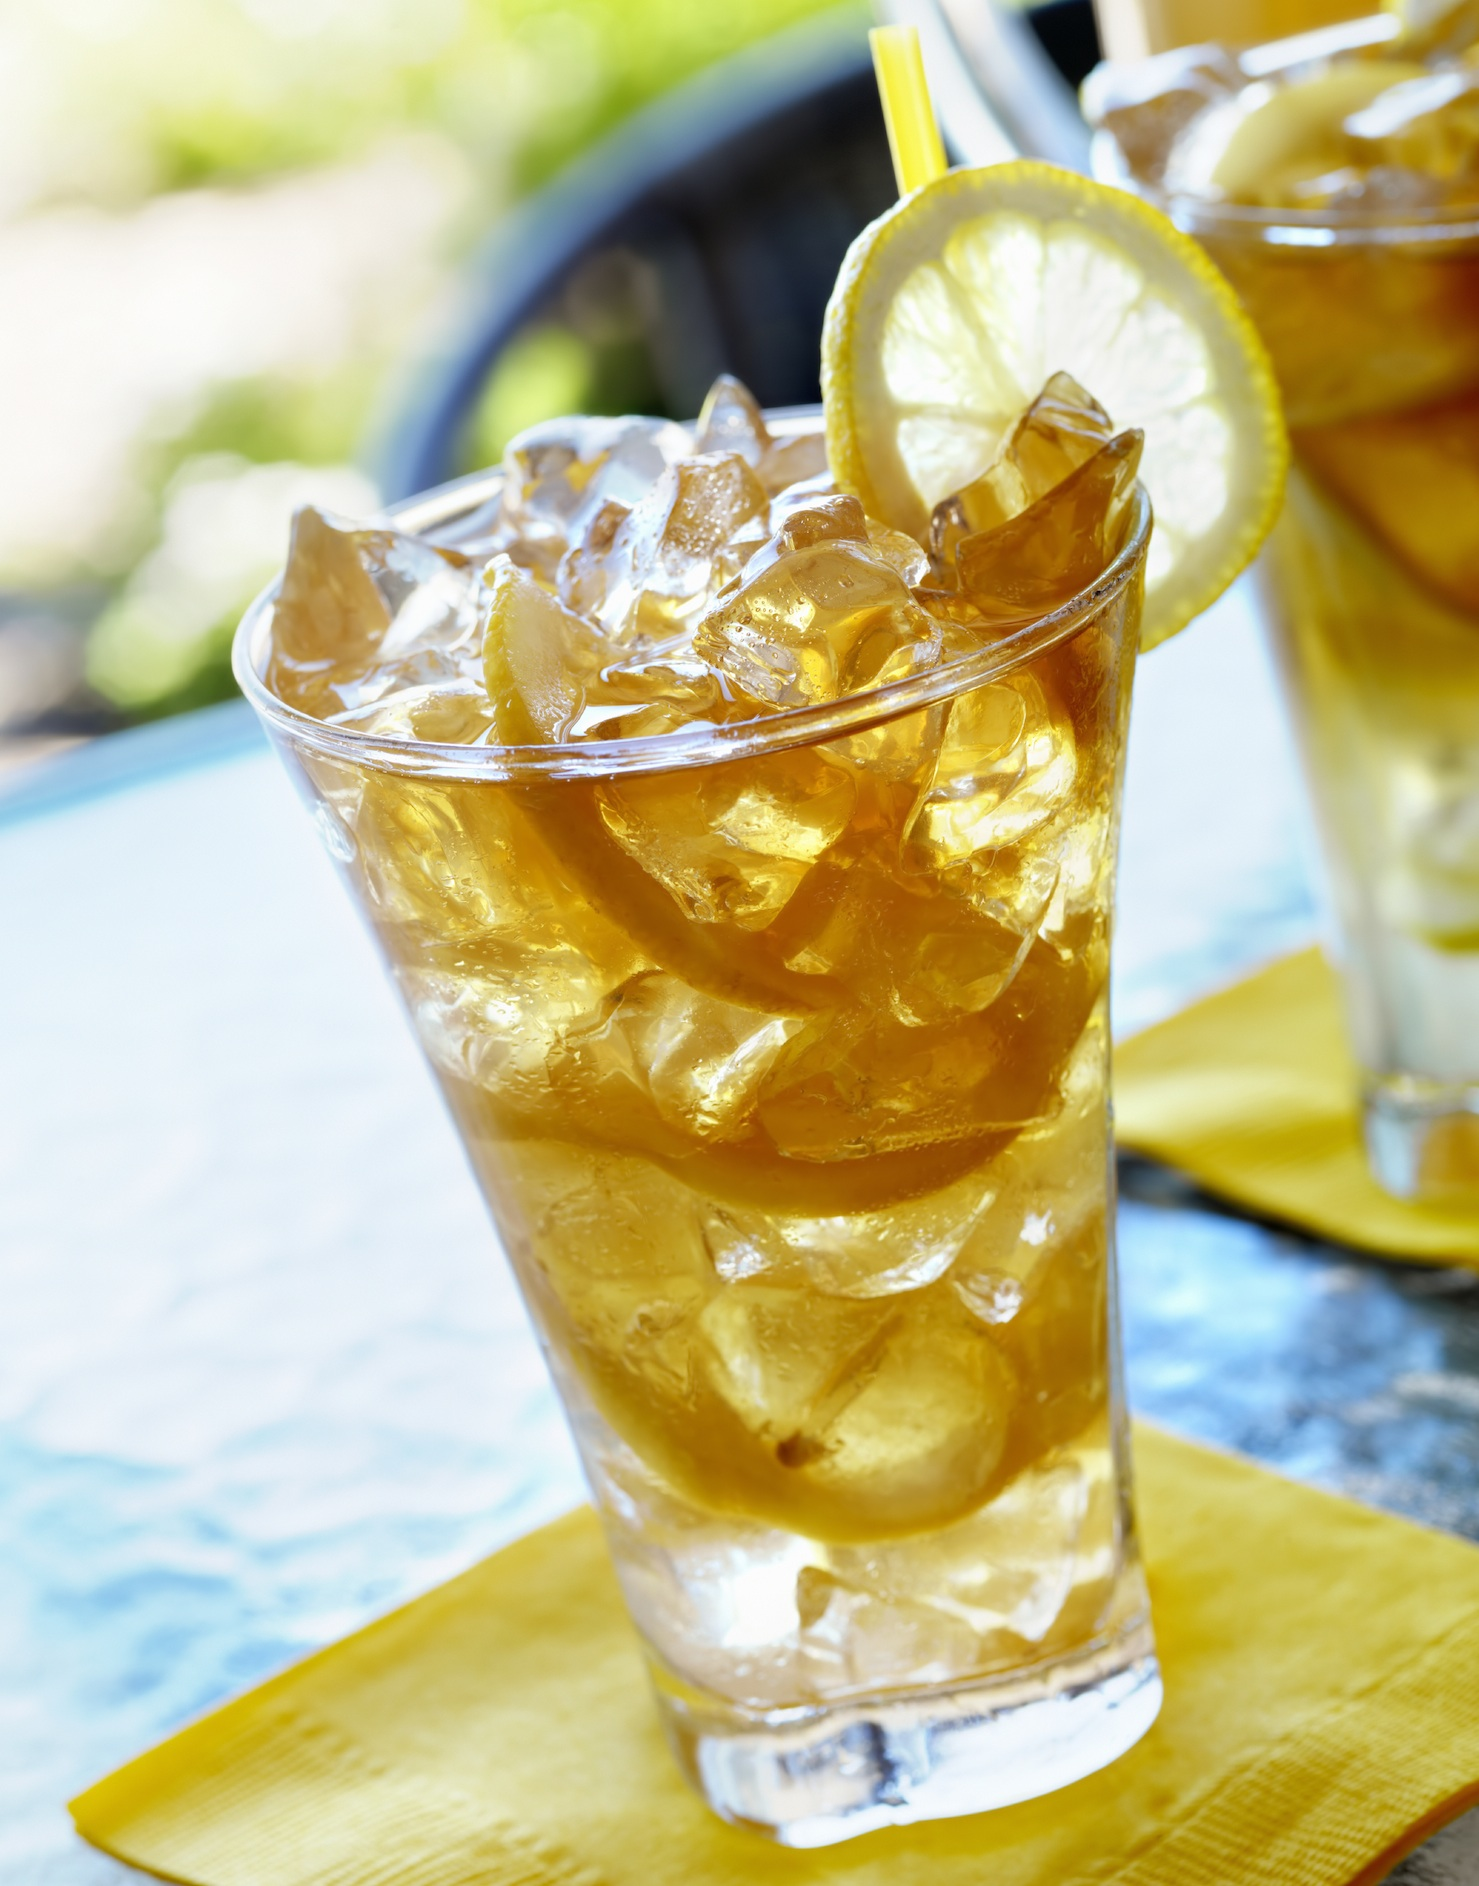 Top 10 long island iced tea recipes recipeporn for Tea and liquor recipes